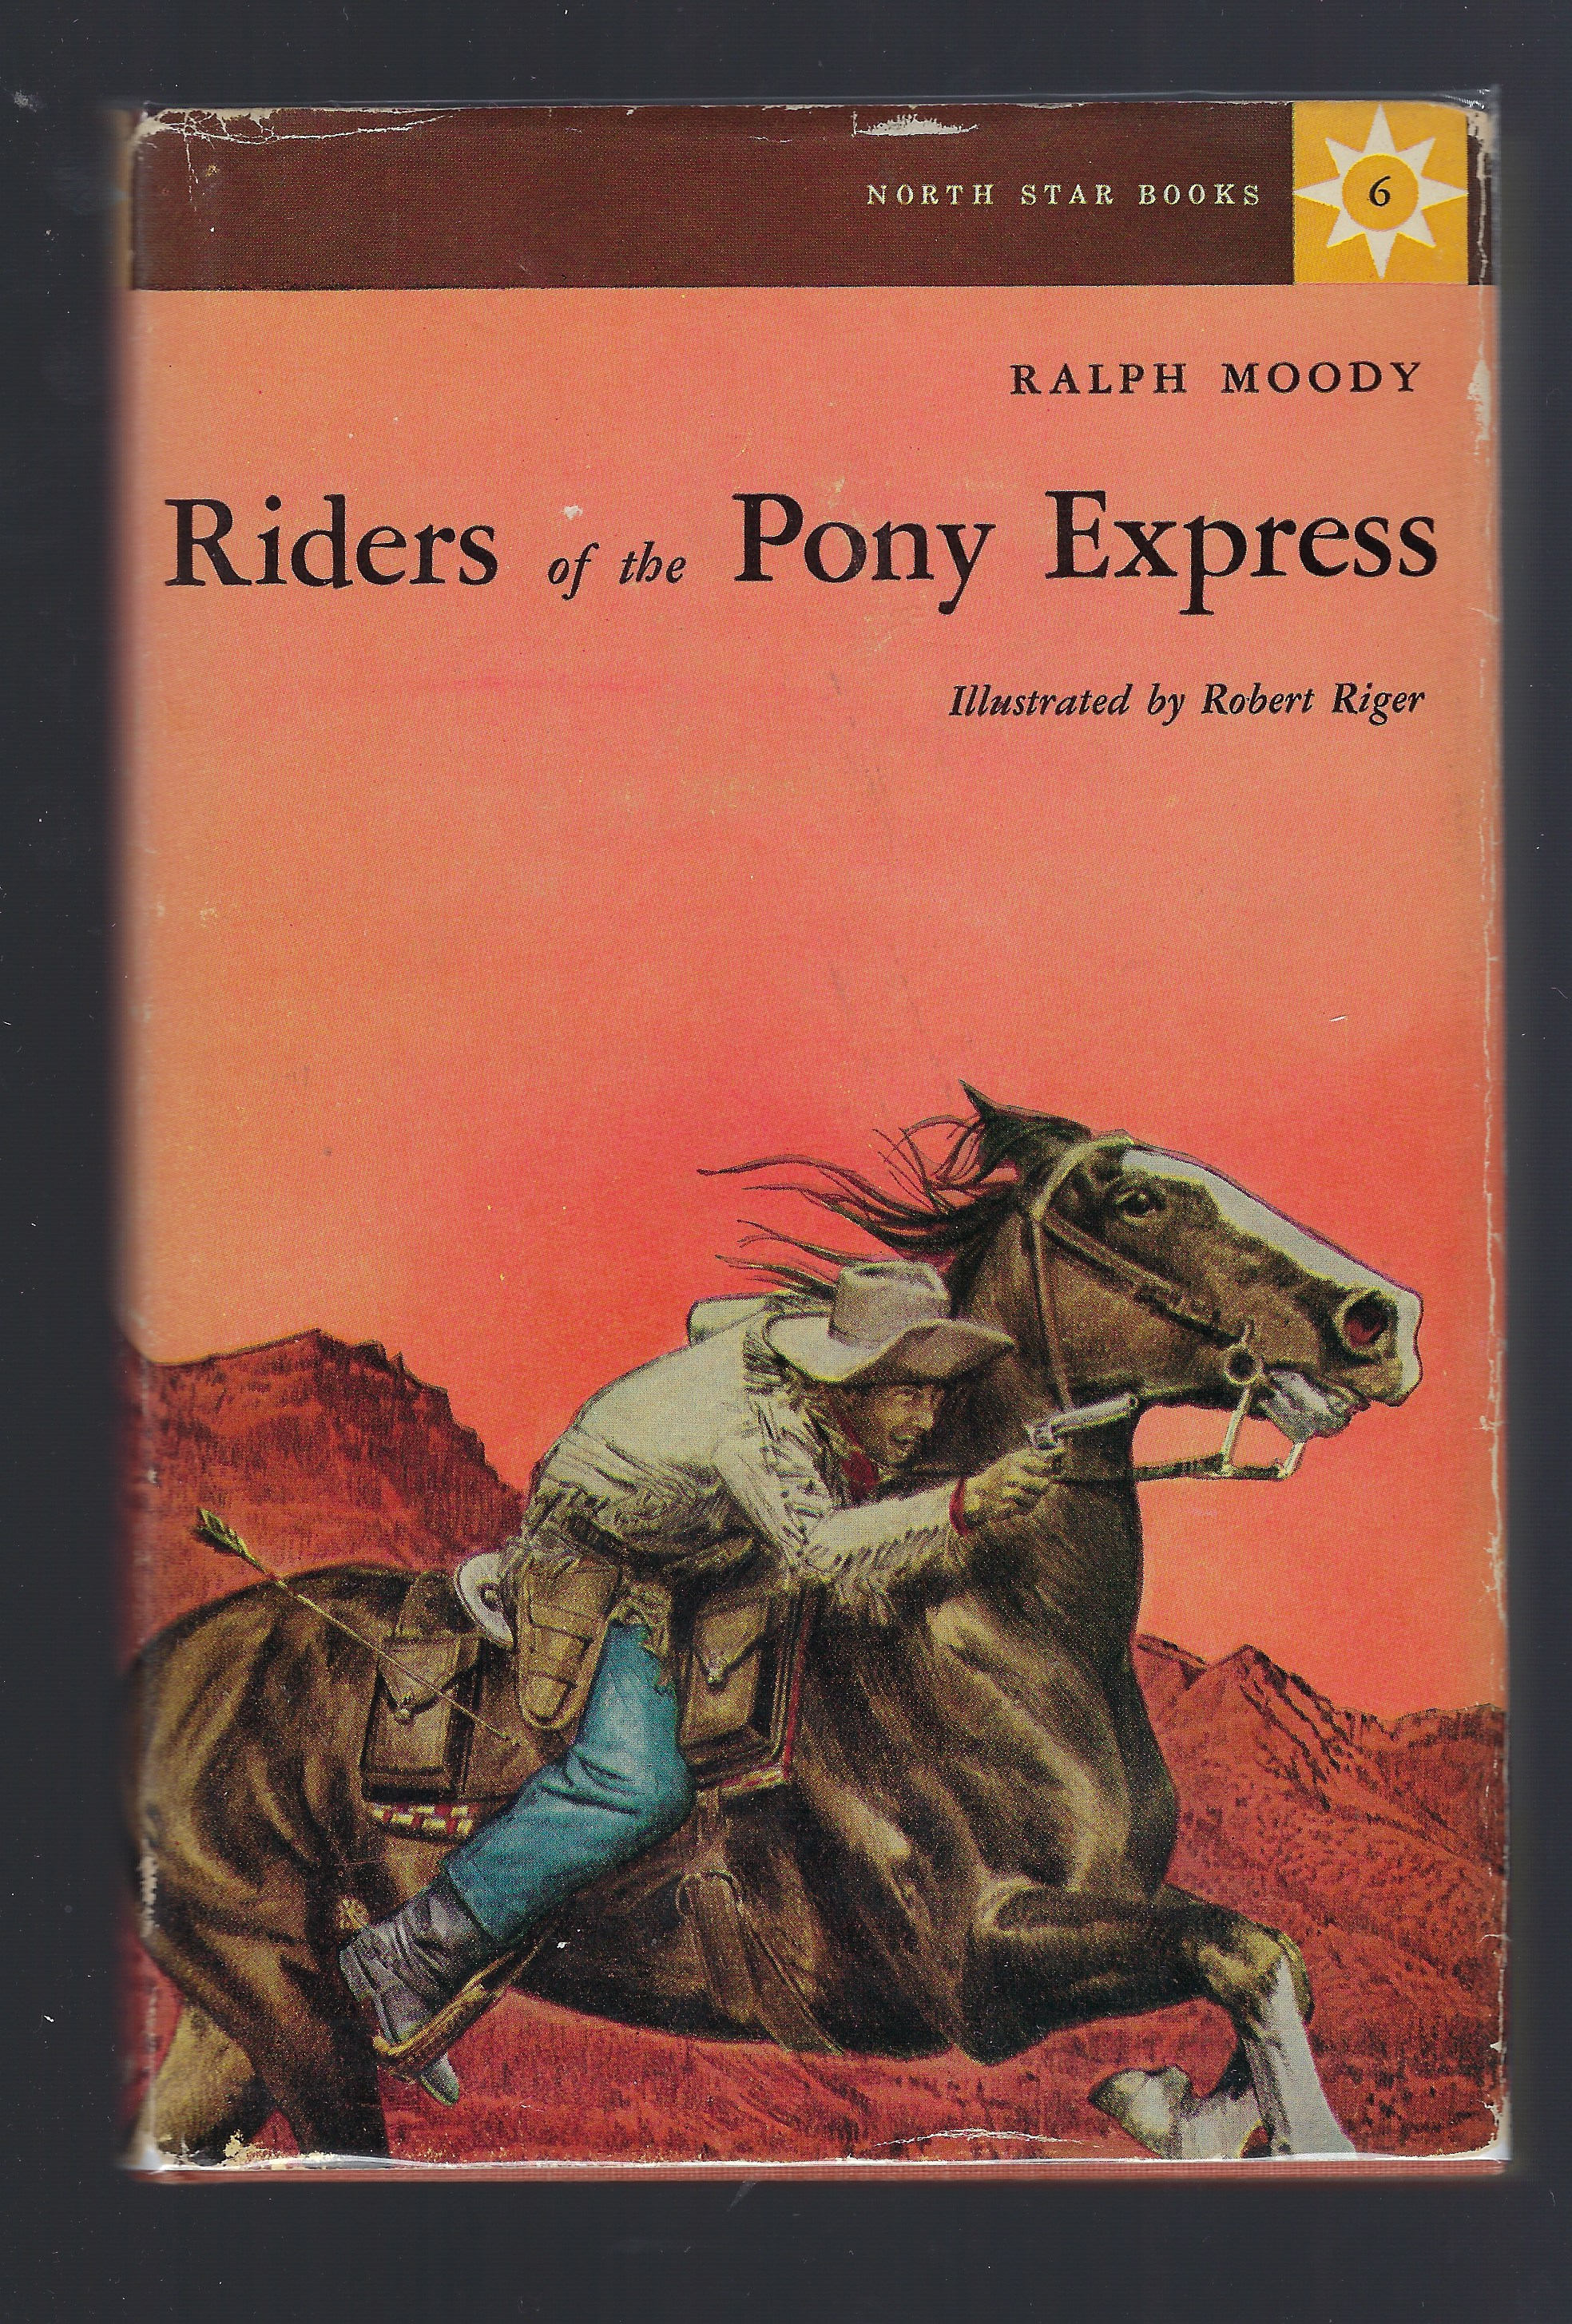 Riders of the Pony Express by Ralph Moody (North Star Series), Ralph Moody